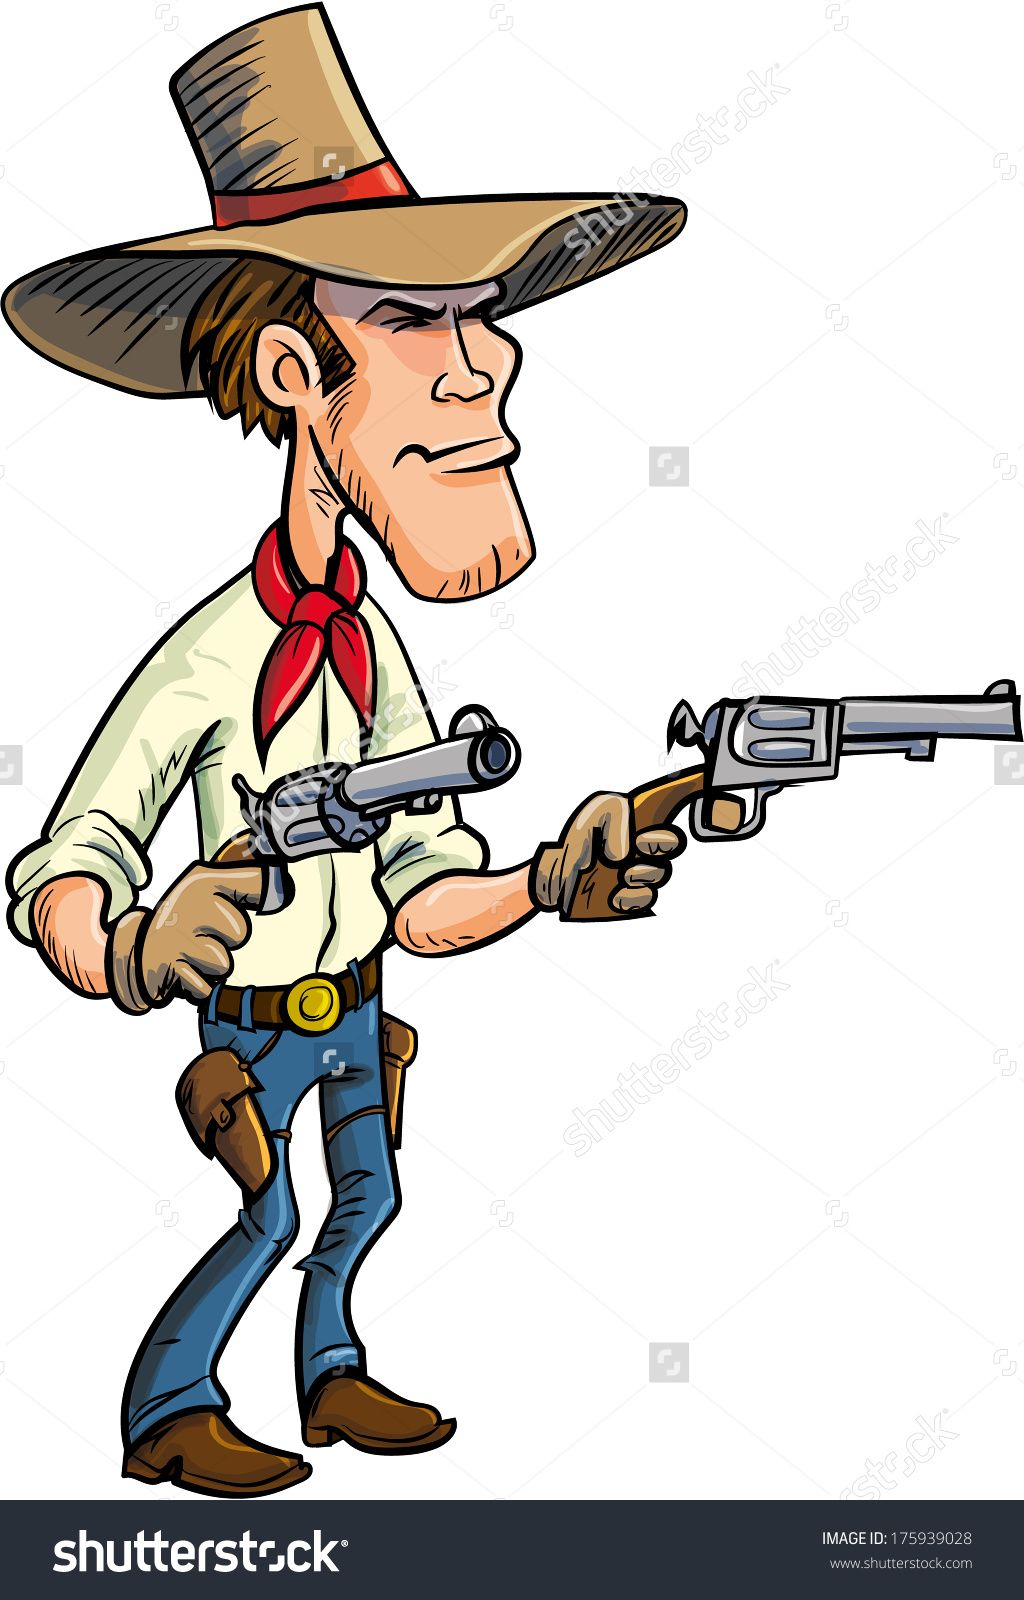 49adb8aa79d Cartoon cowboy drawing guns. Isolated on white